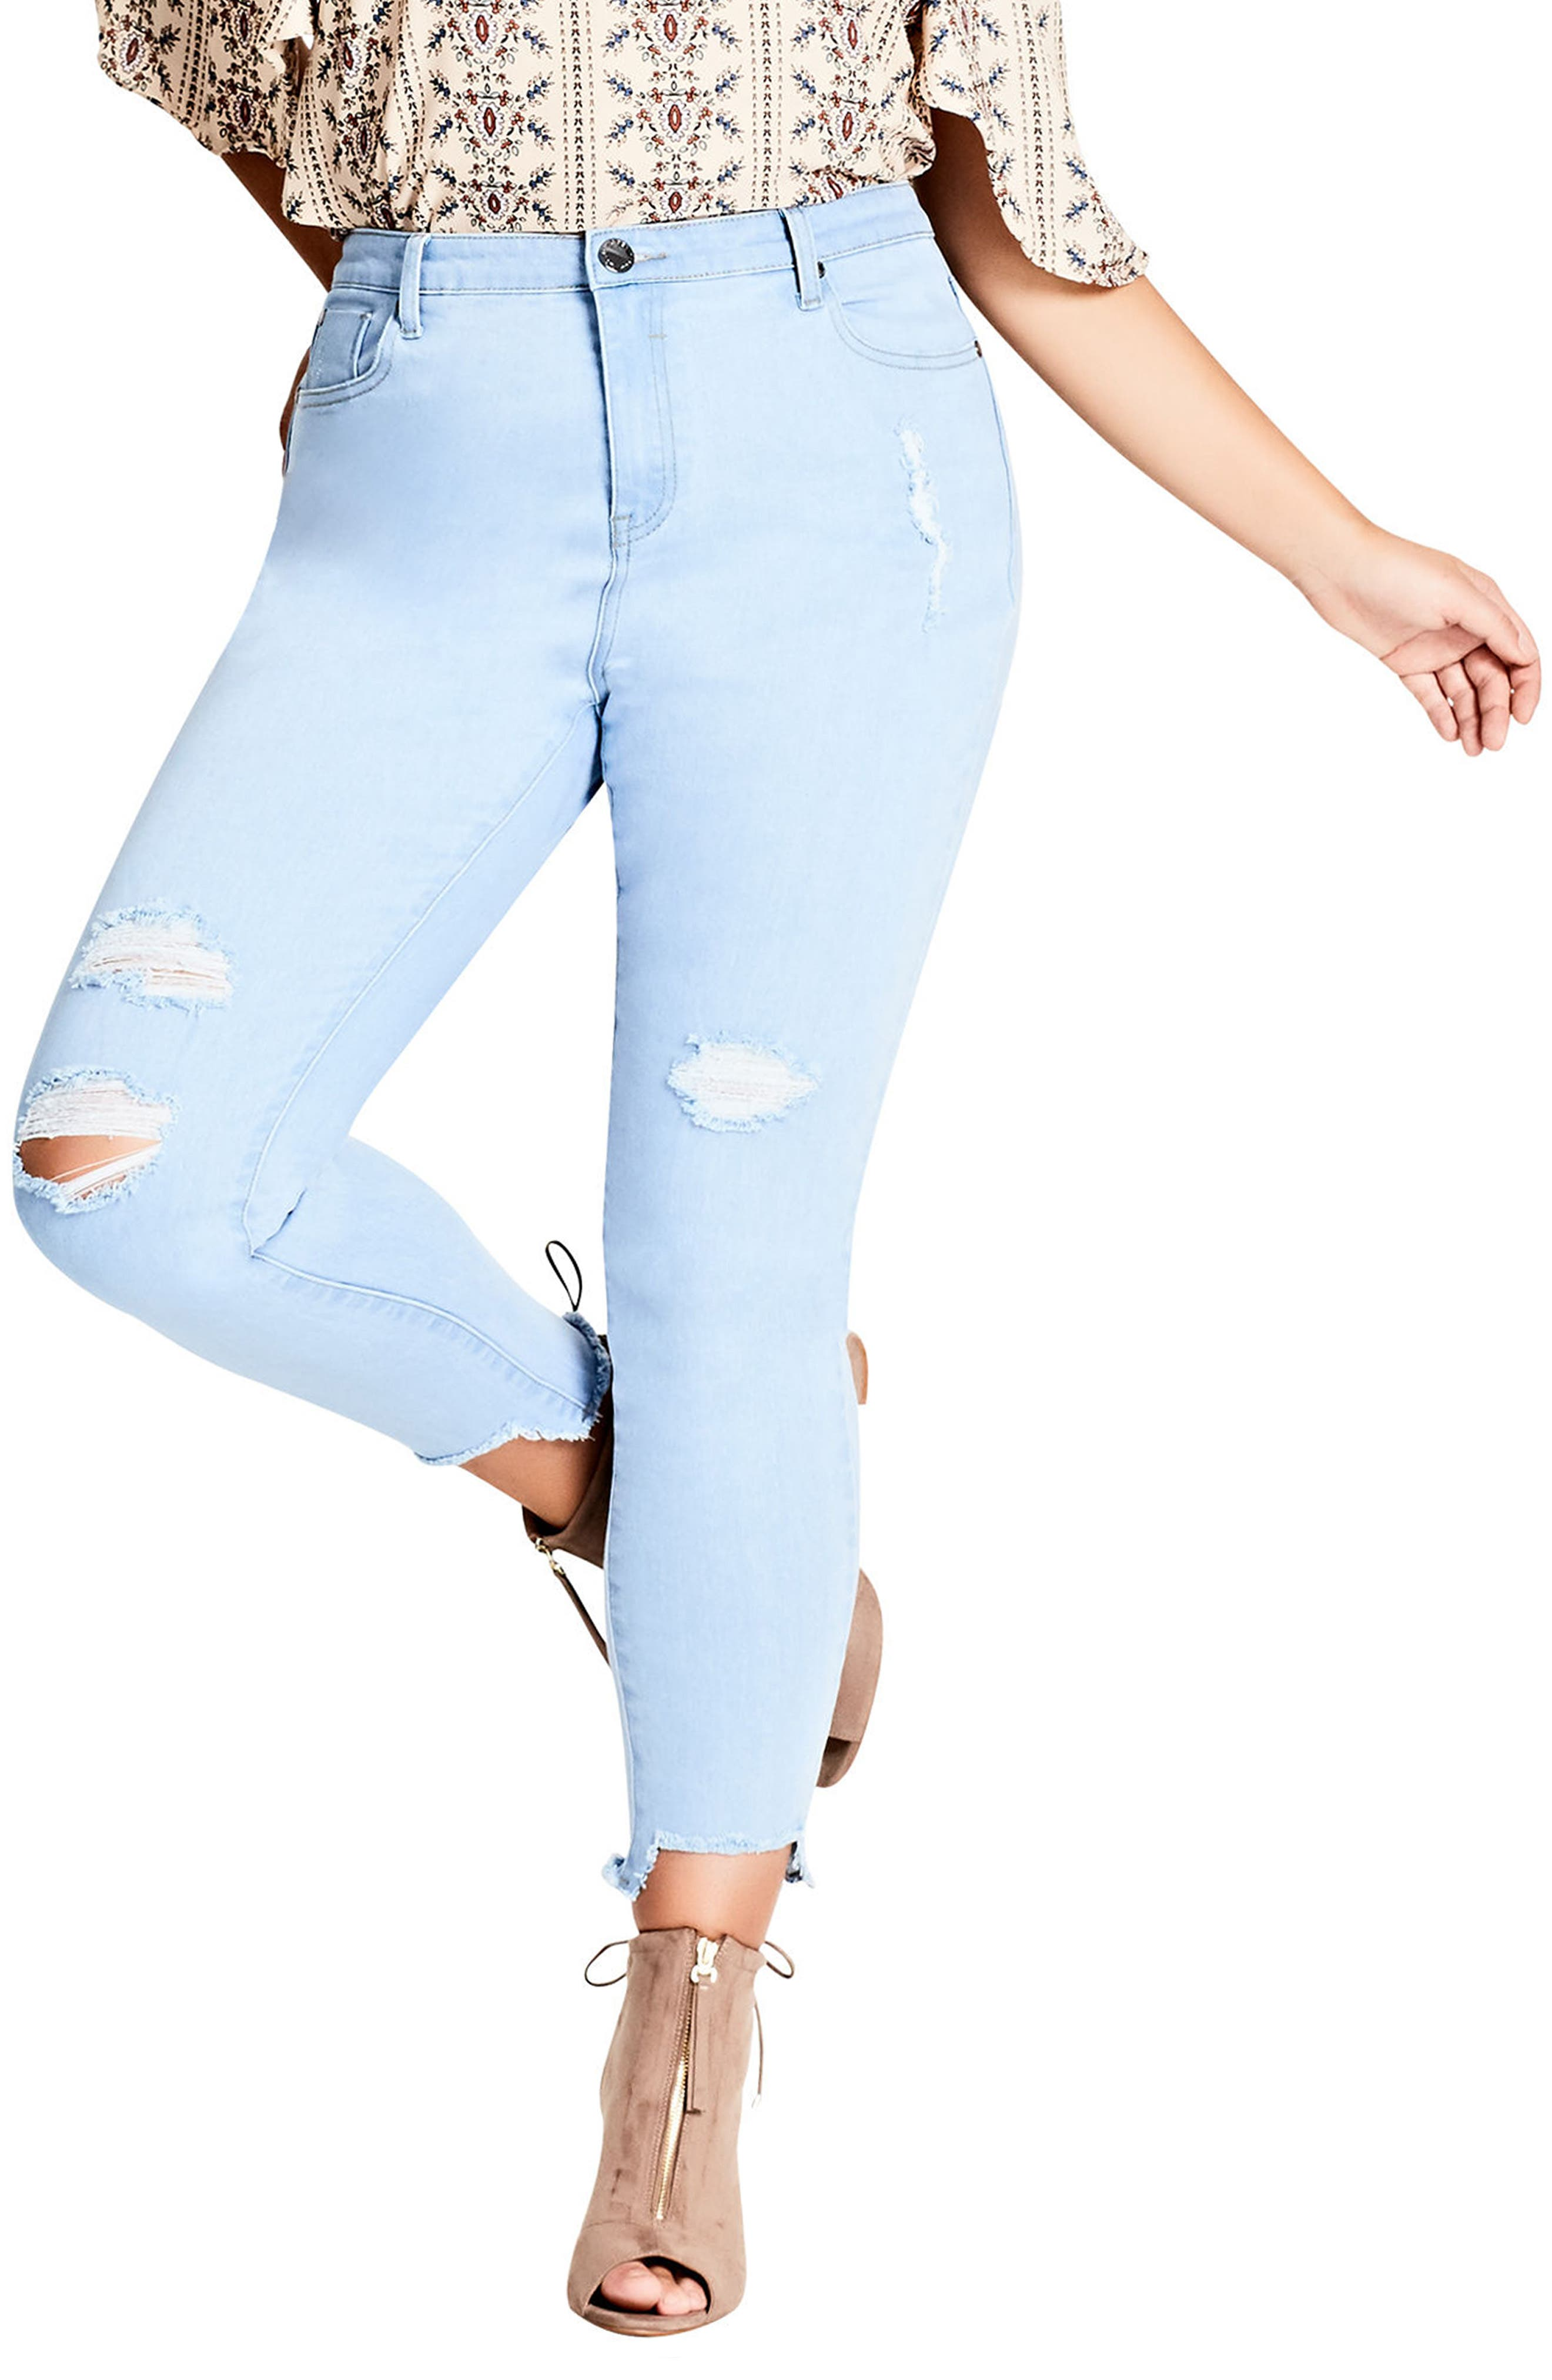 Ice Queen Crop Skinny Jeans,                             Main thumbnail 1, color,                             Light Denim